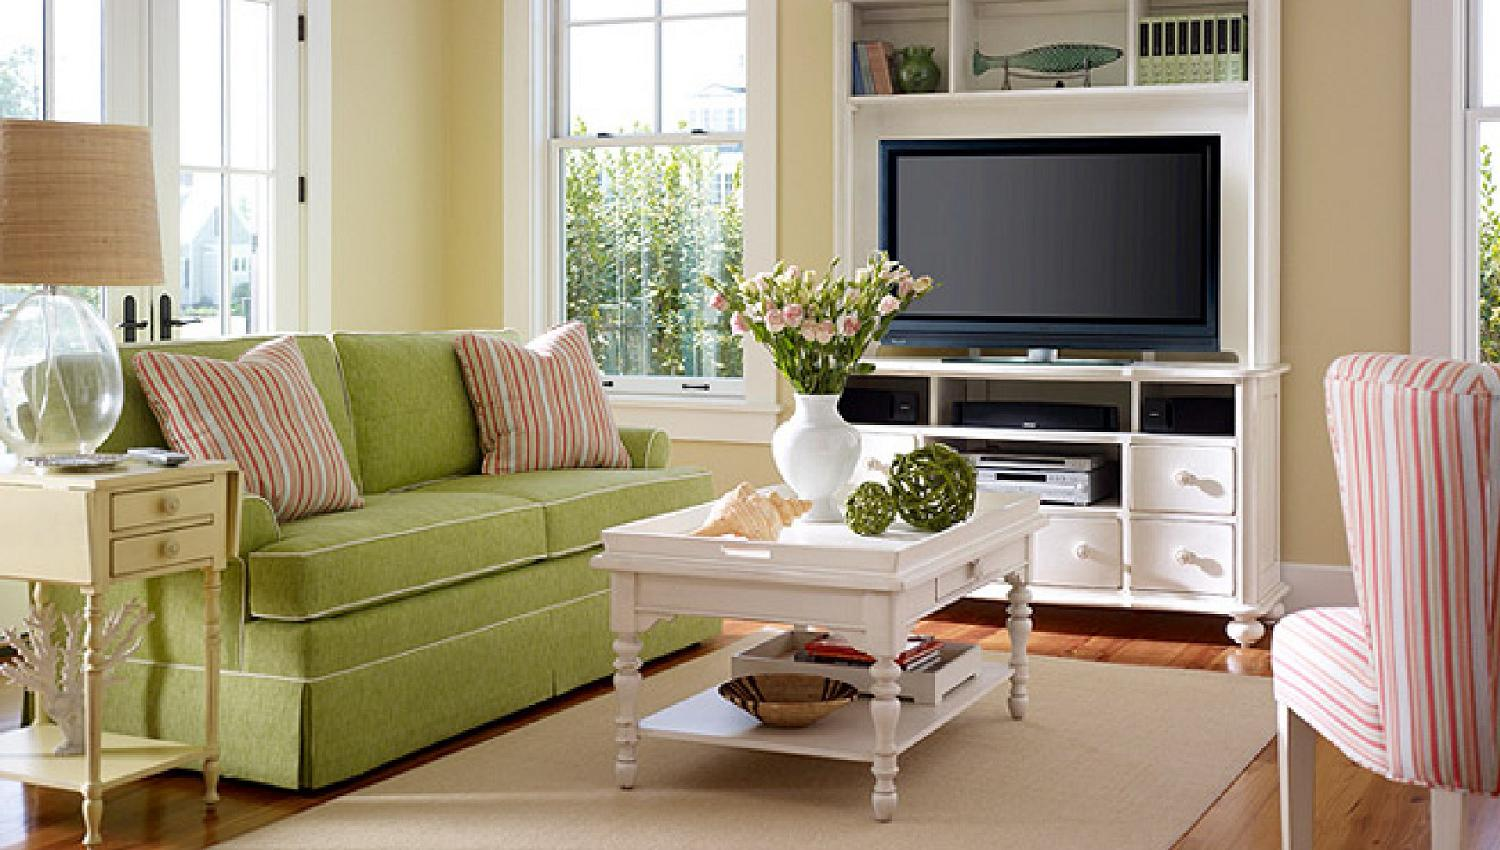 Fabulous Country Living Room Decorating 1500 x 850 · 176 kB · jpeg